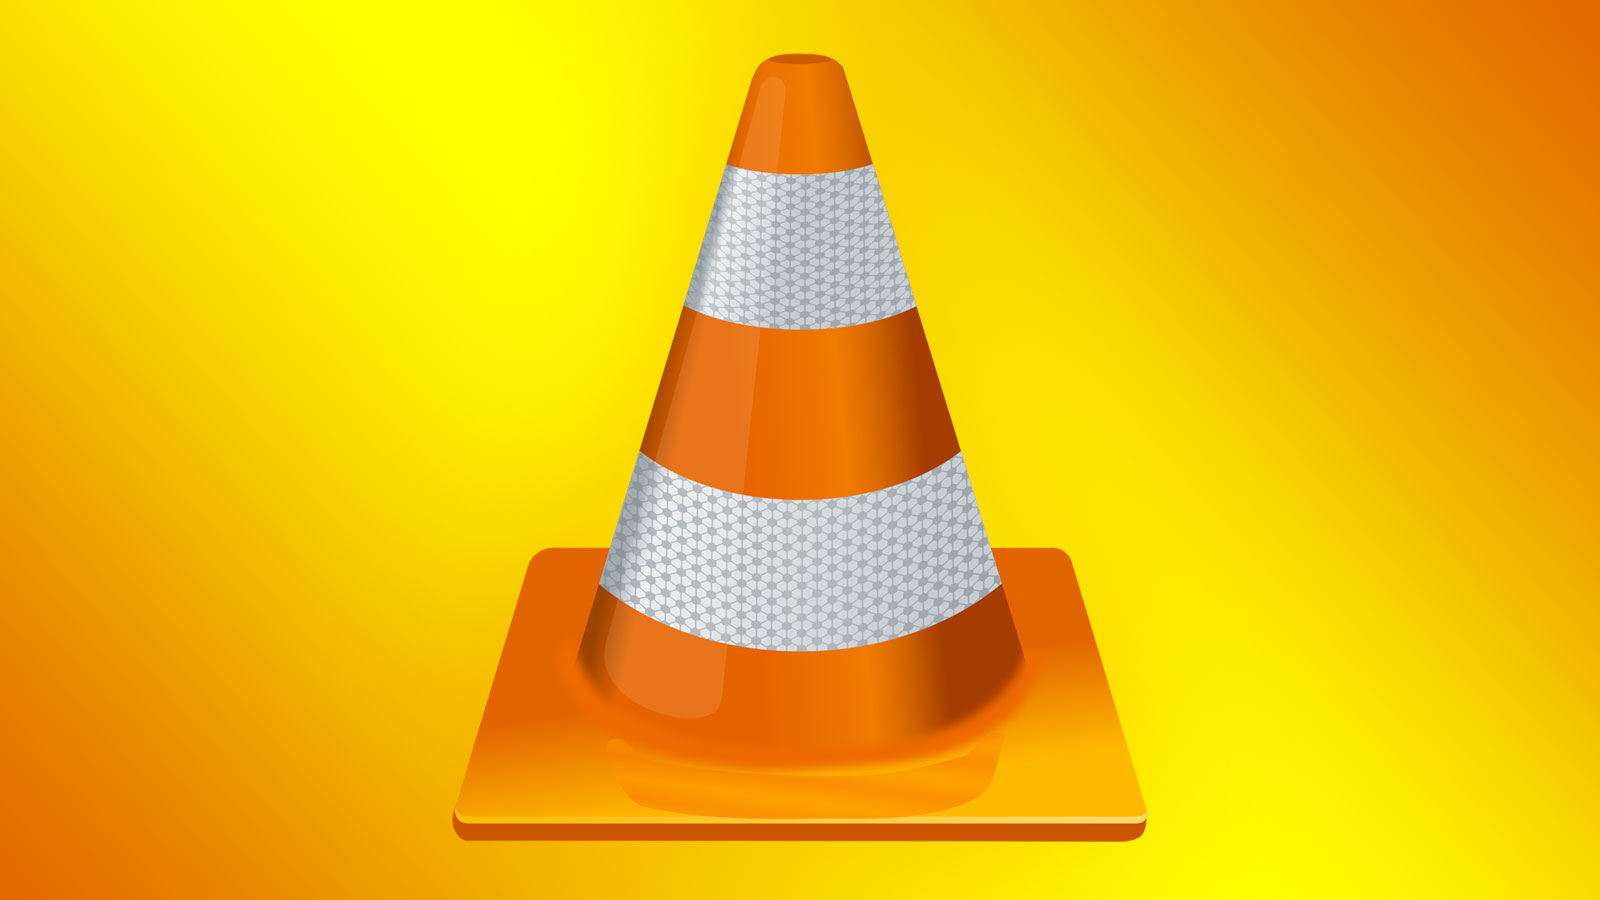 como convertir archivos de video a mp3 con vlc